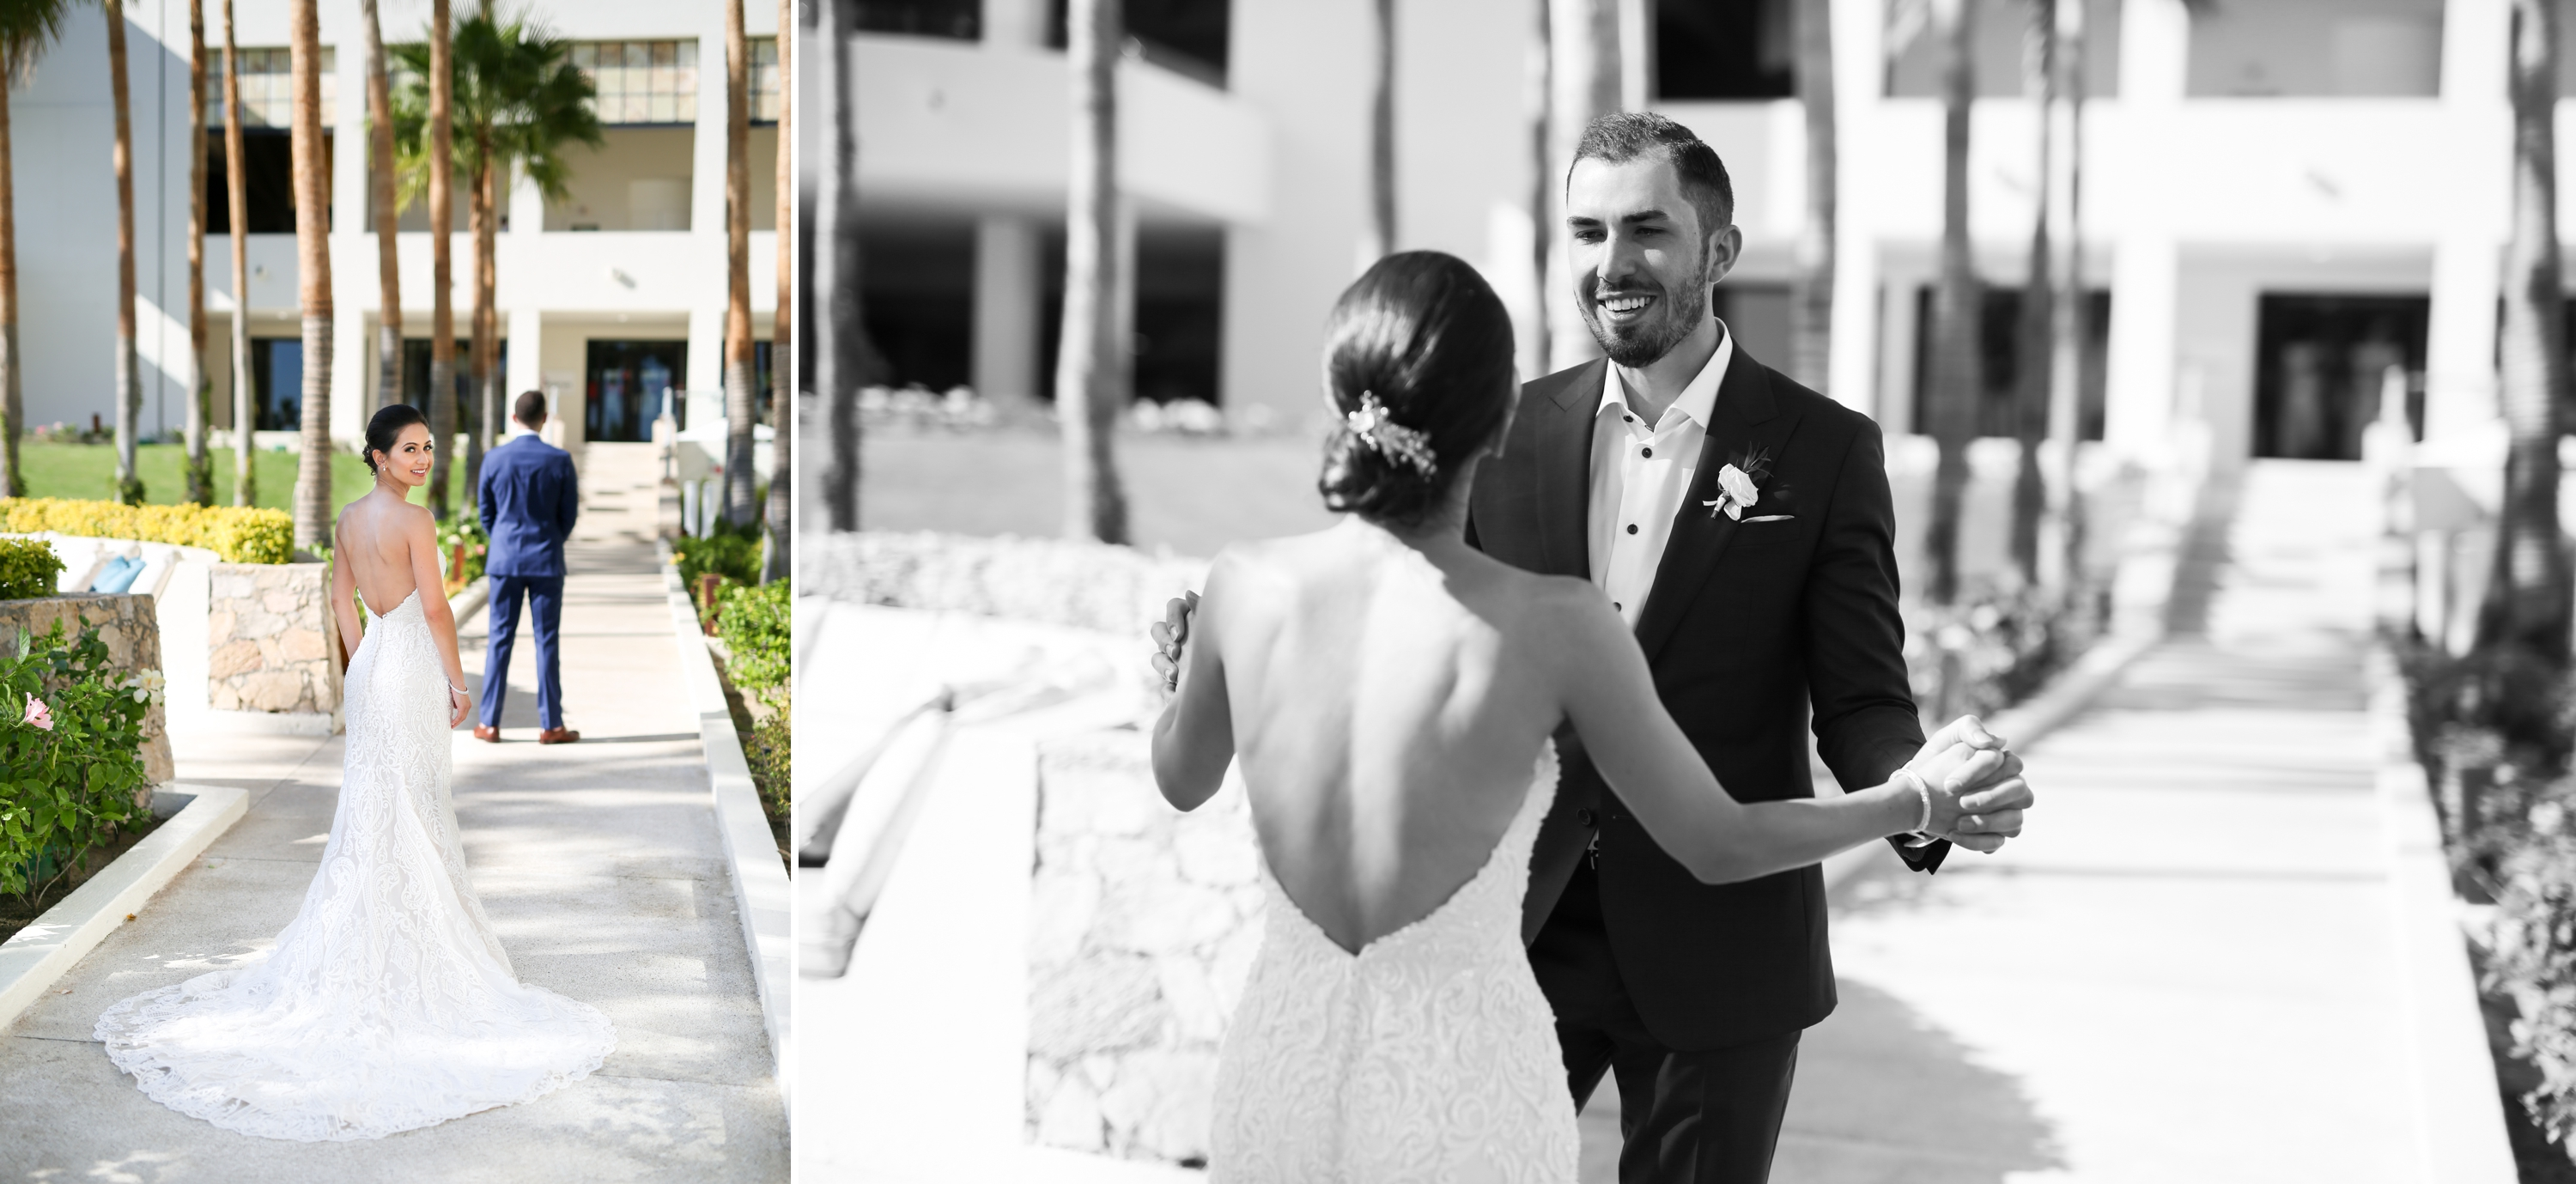 First Look Reveal Paradisus Mexico Los Cabos Sea of Cortez Zsuzsi Pal Photography Destination Wedding